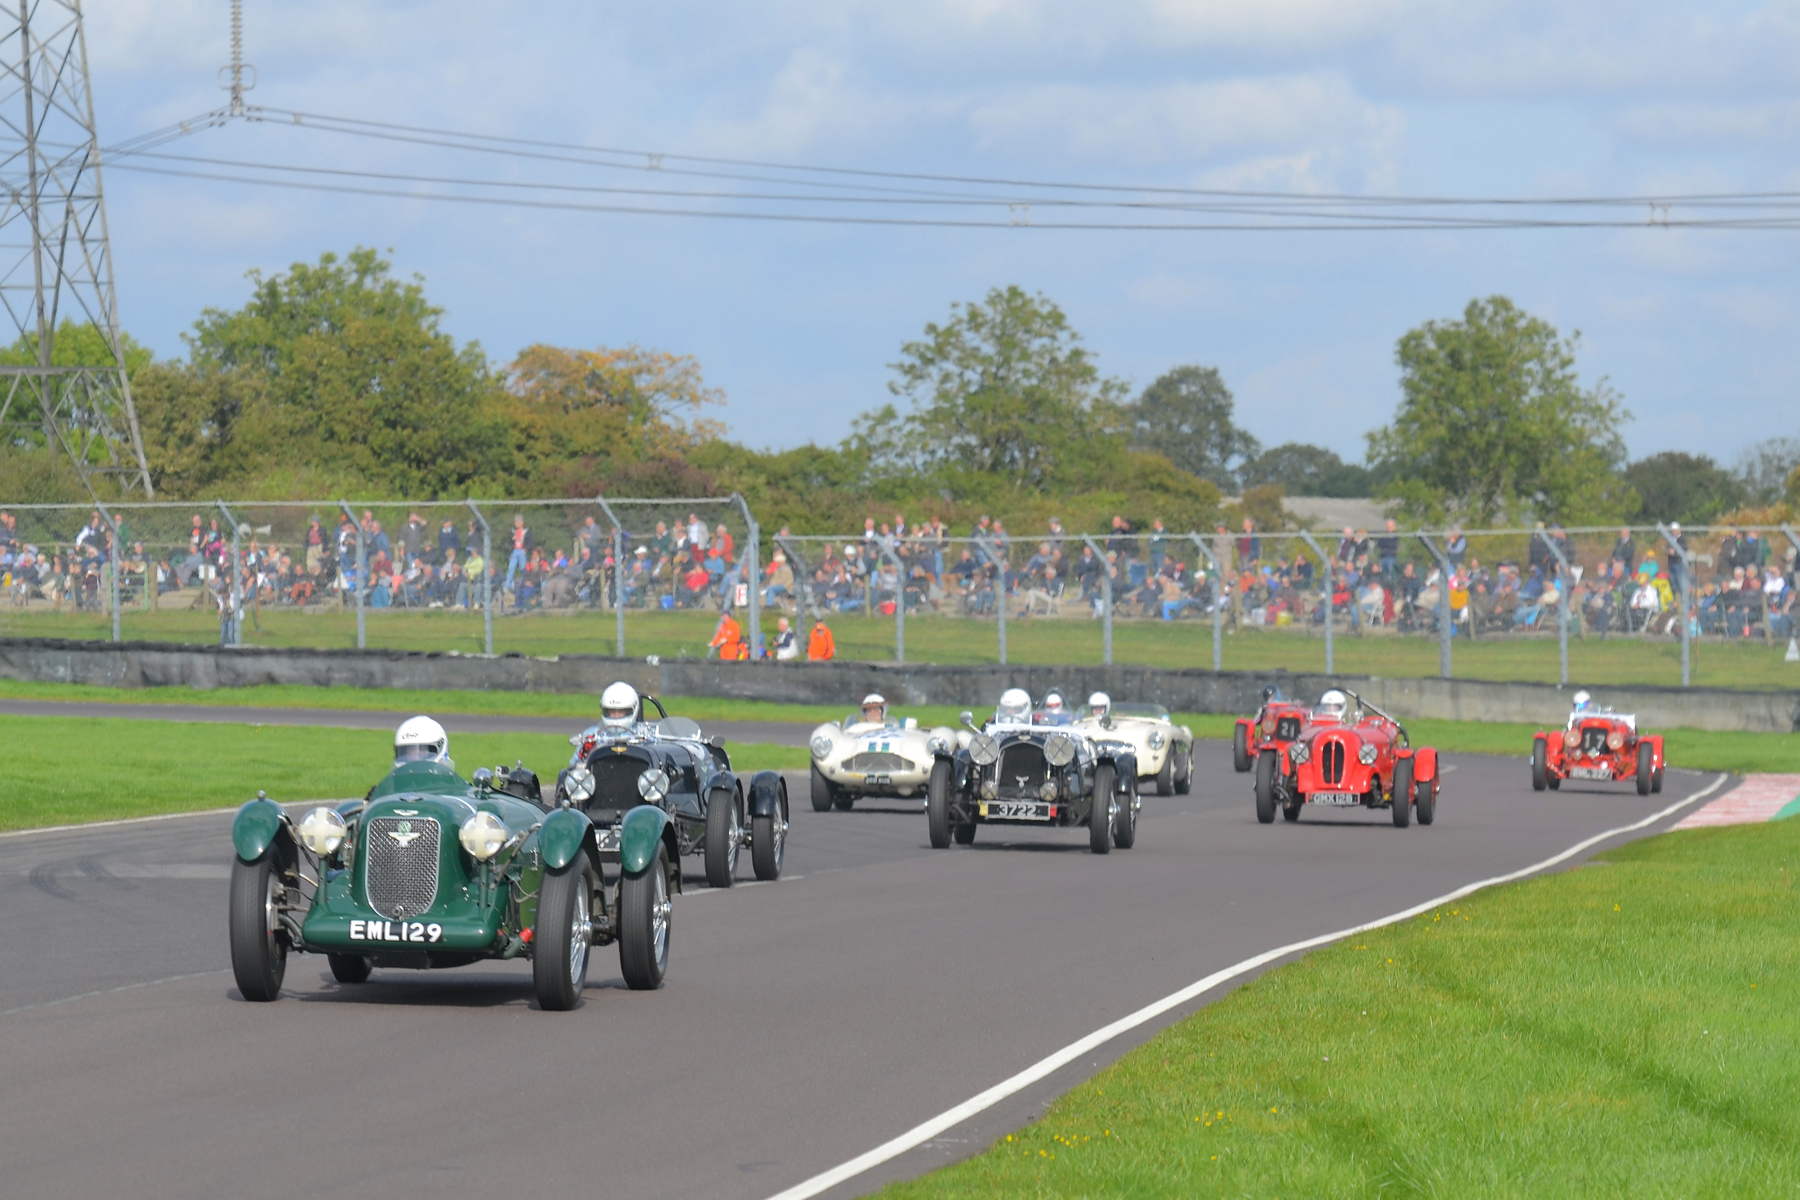 Further back but still on first lap, David Freeman leads the prewar Astons and a few of the postwar cars. The leading 1500cc Aston at this point is car 17 (Ulster LM17) in the hands of Holly Mason-Franchitti (far right)      Photo - Ollie Read